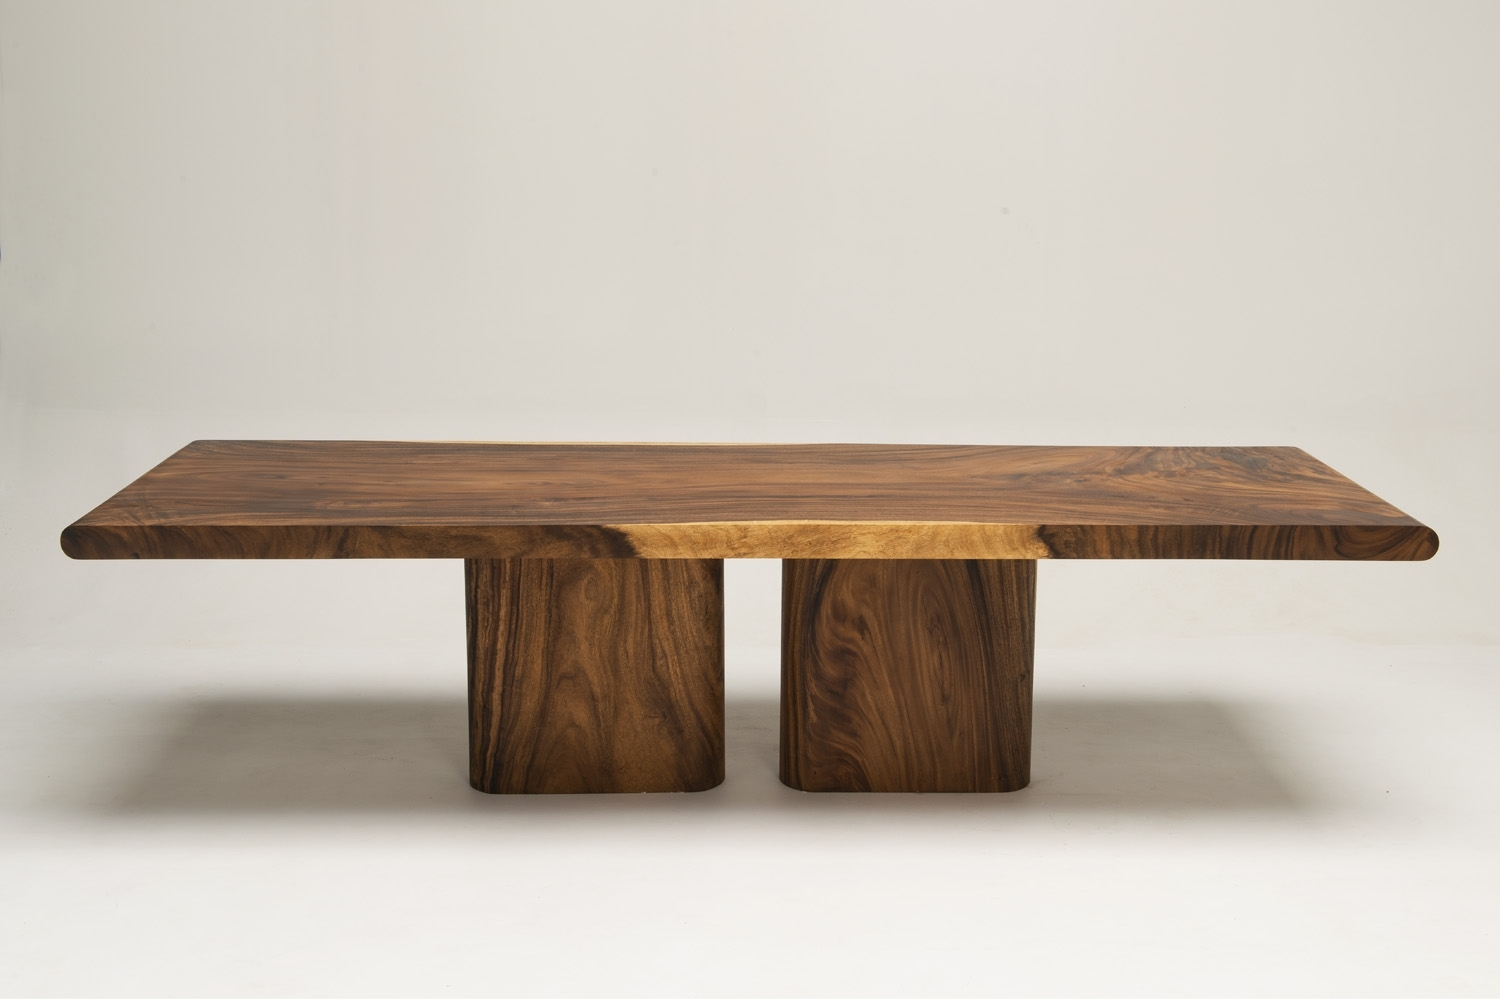 Chista / Furniture / Large Tables / Suar Dining Tables throughout Large Teak Coffee Tables (Image 5 of 30)